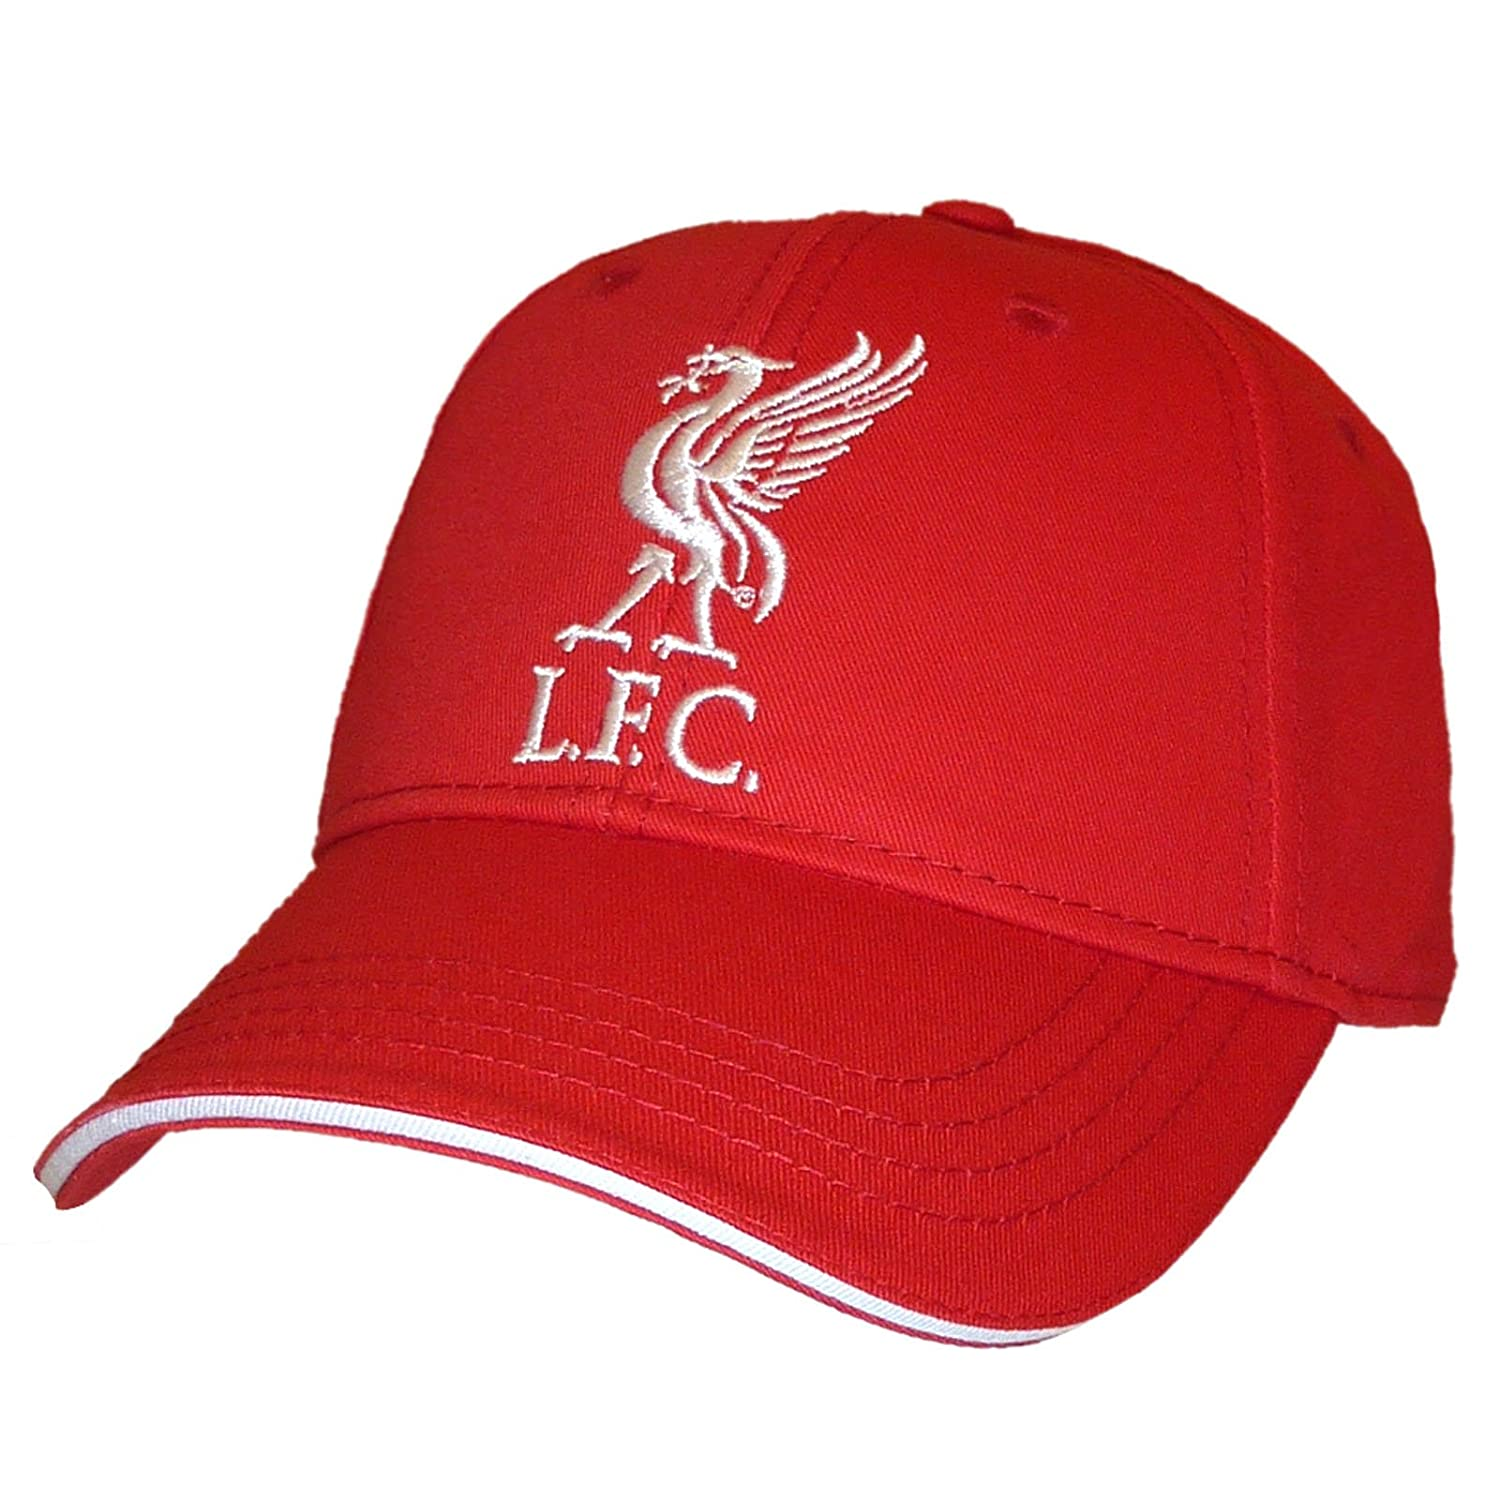 1b460fd02ee Liverpool FC Red Baseball Cap (Core)  Amazon.co.uk  Sports   Outdoors